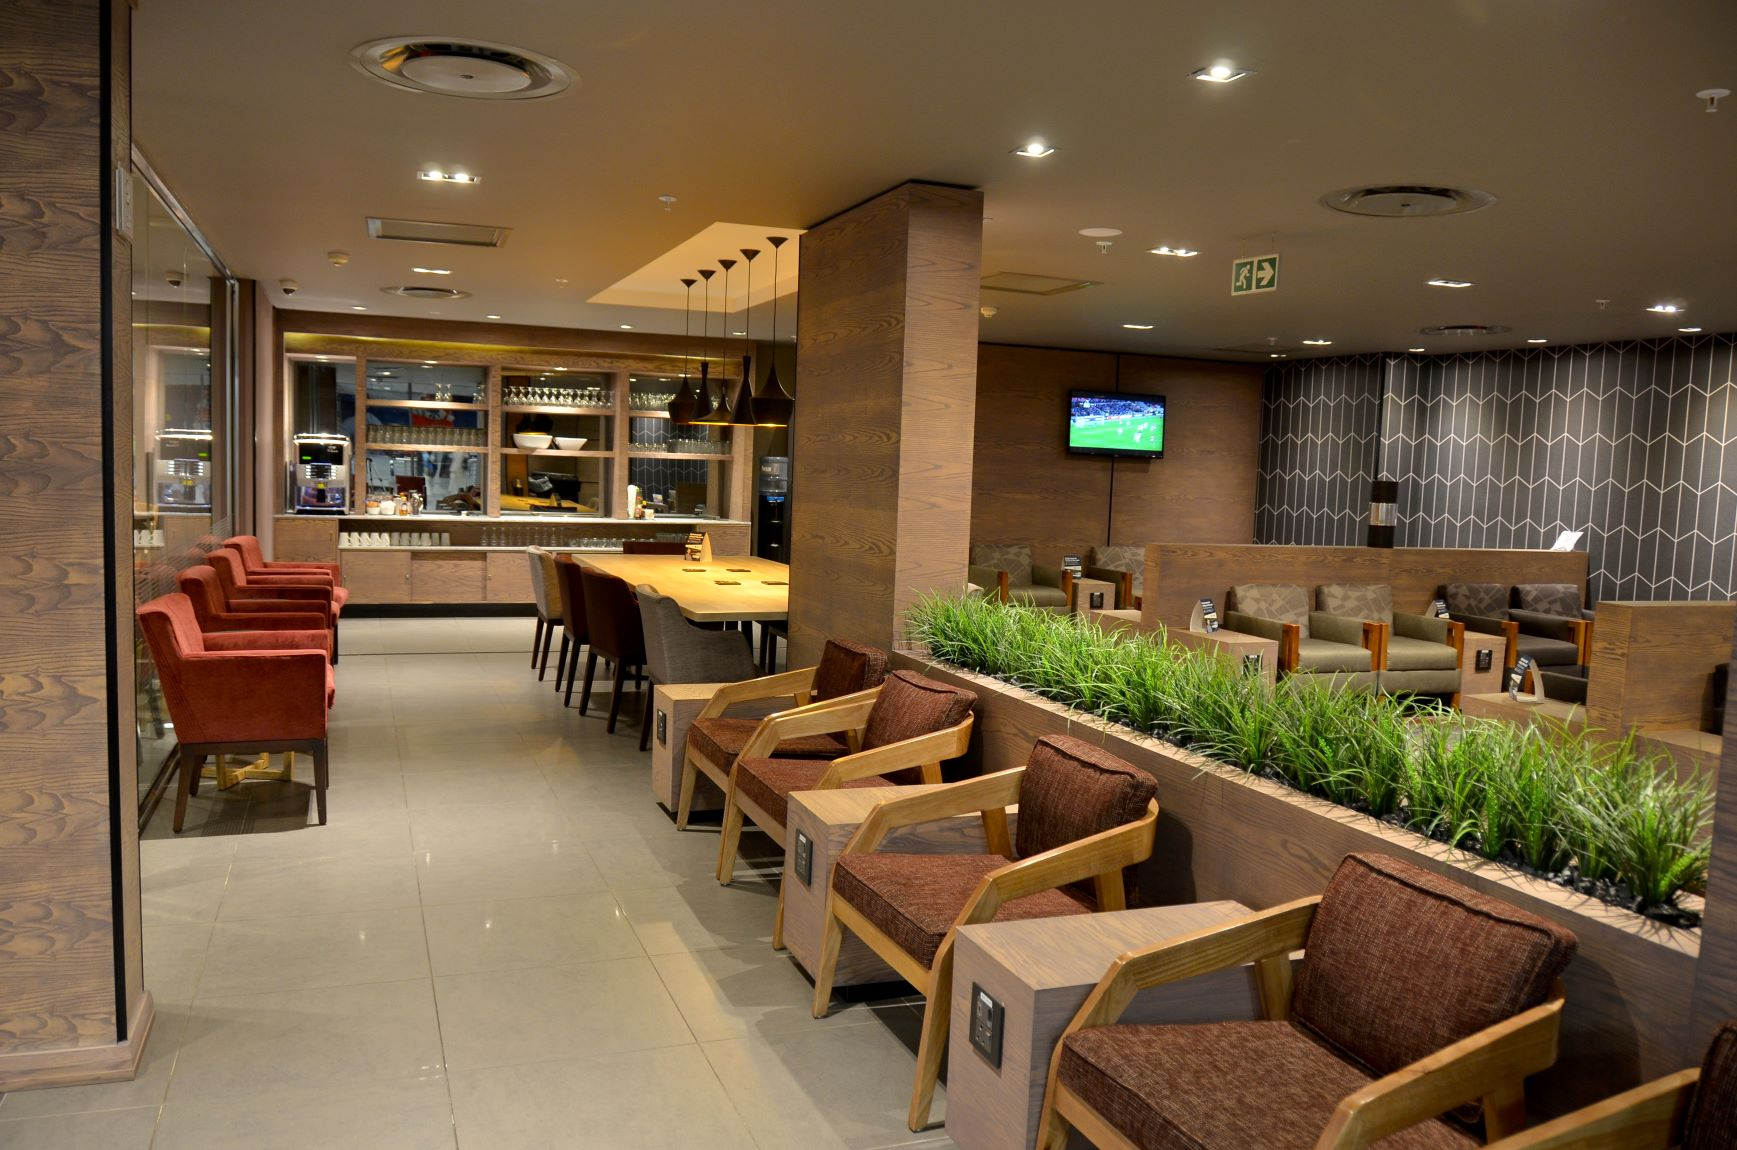 Bidvest Premier Lounge at Oliver Tambo Domestic